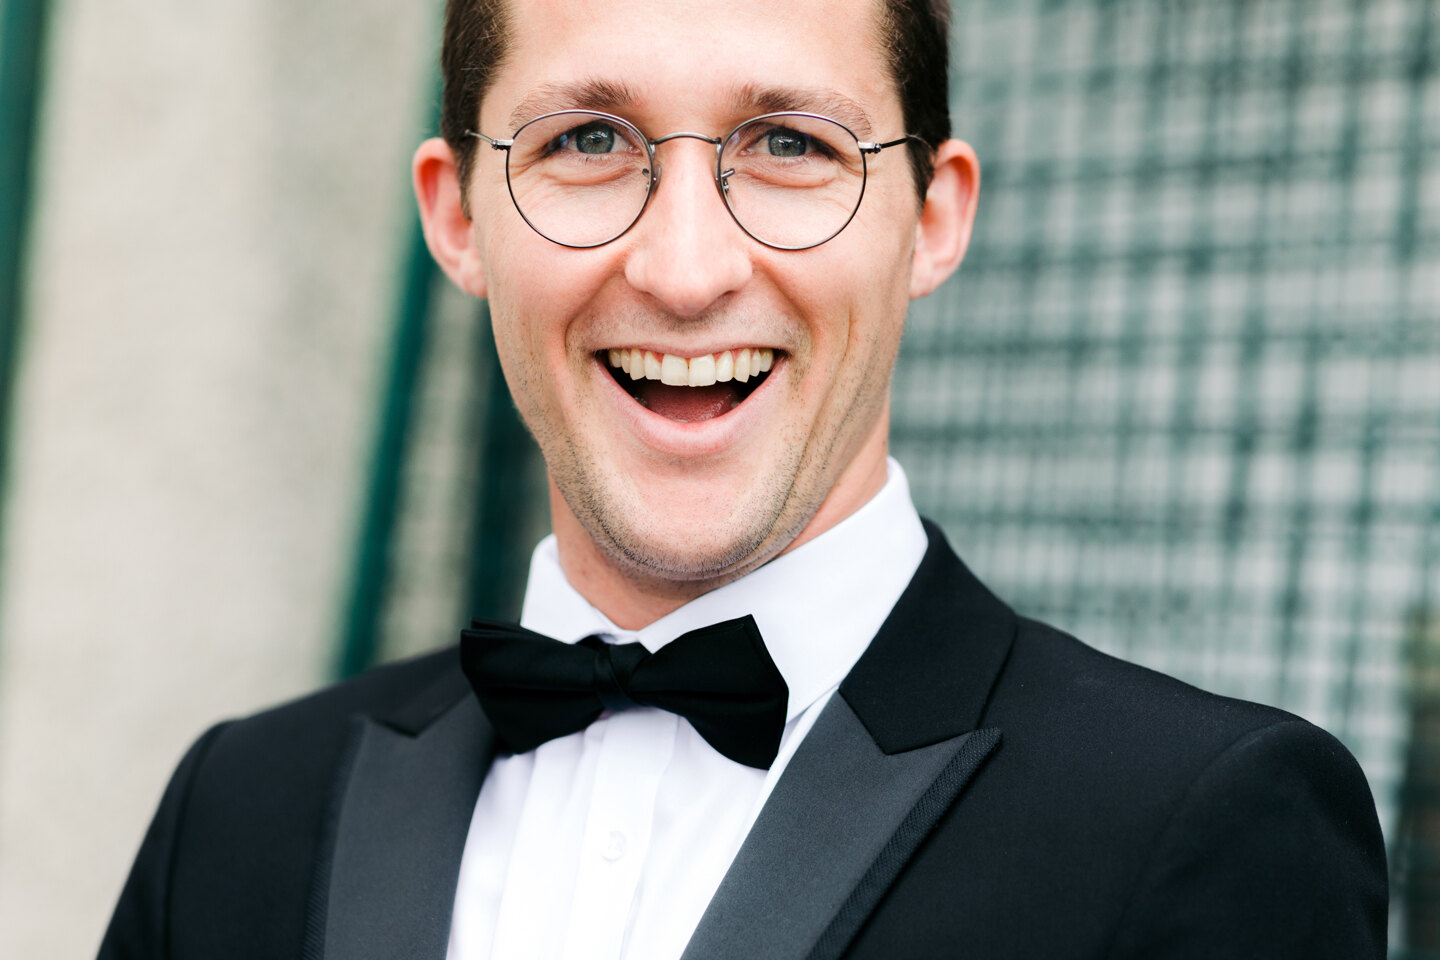 Wedding Photographer in Milan: Portrait of a groom in a black suit and glasses who smiles broadly into the frame